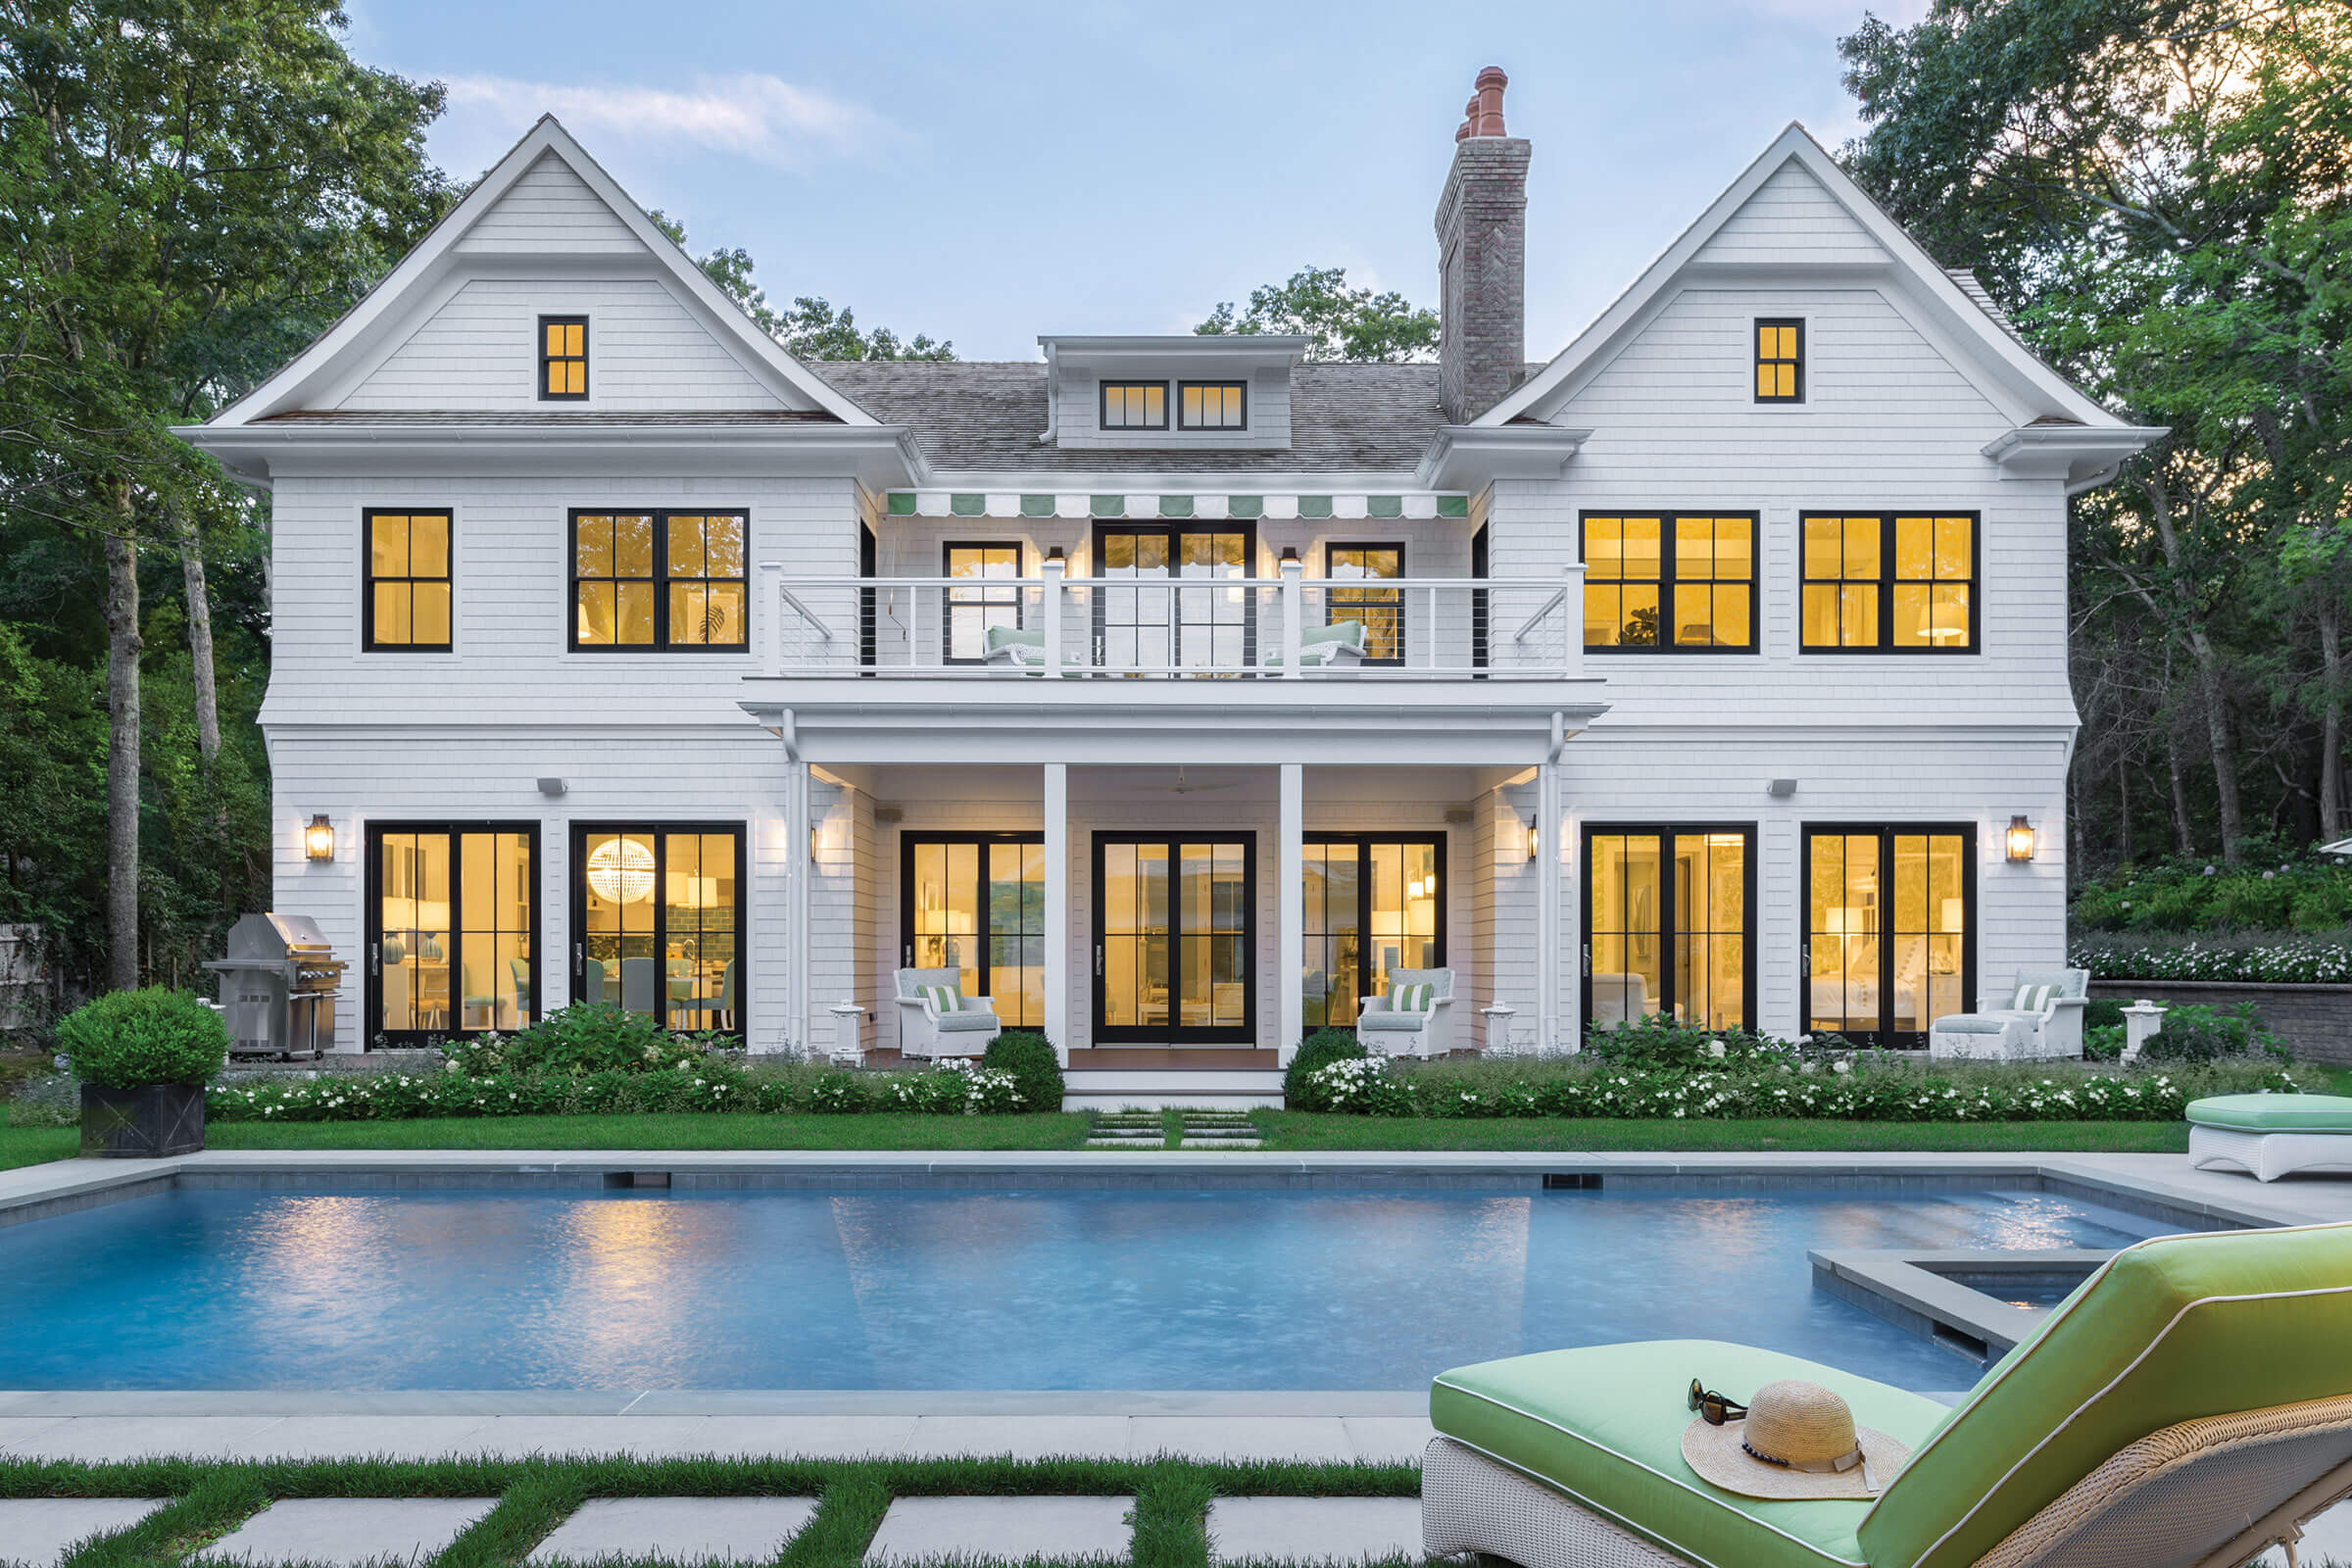 Pool And Exterior View of Large White House With Signature Ultimate Double Hung G2 Windows